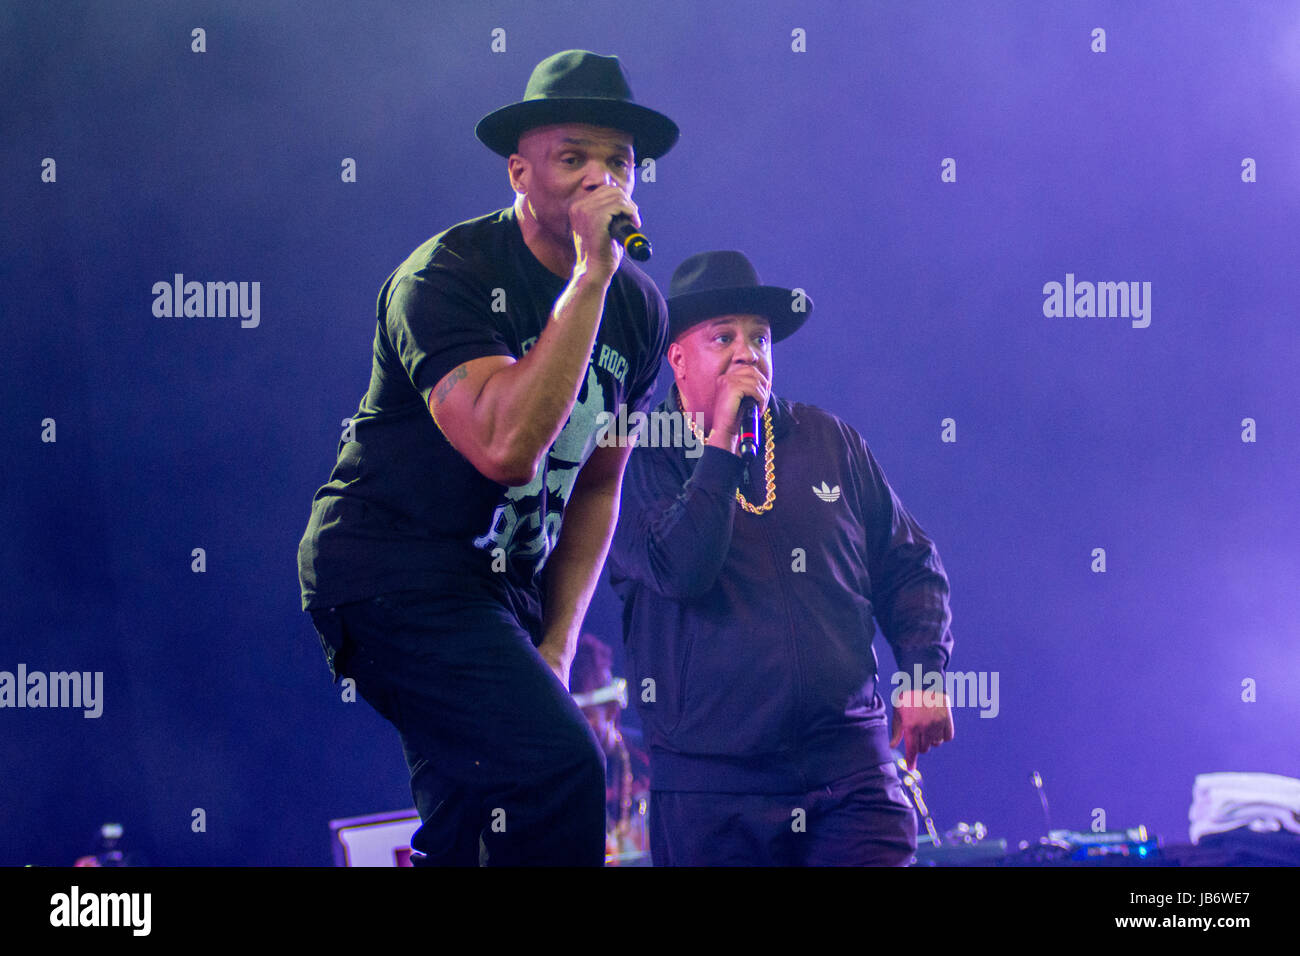 Run DMC had the crowd jumping at the main stage of The Isle of Wight Festival 2017 - Stock Image